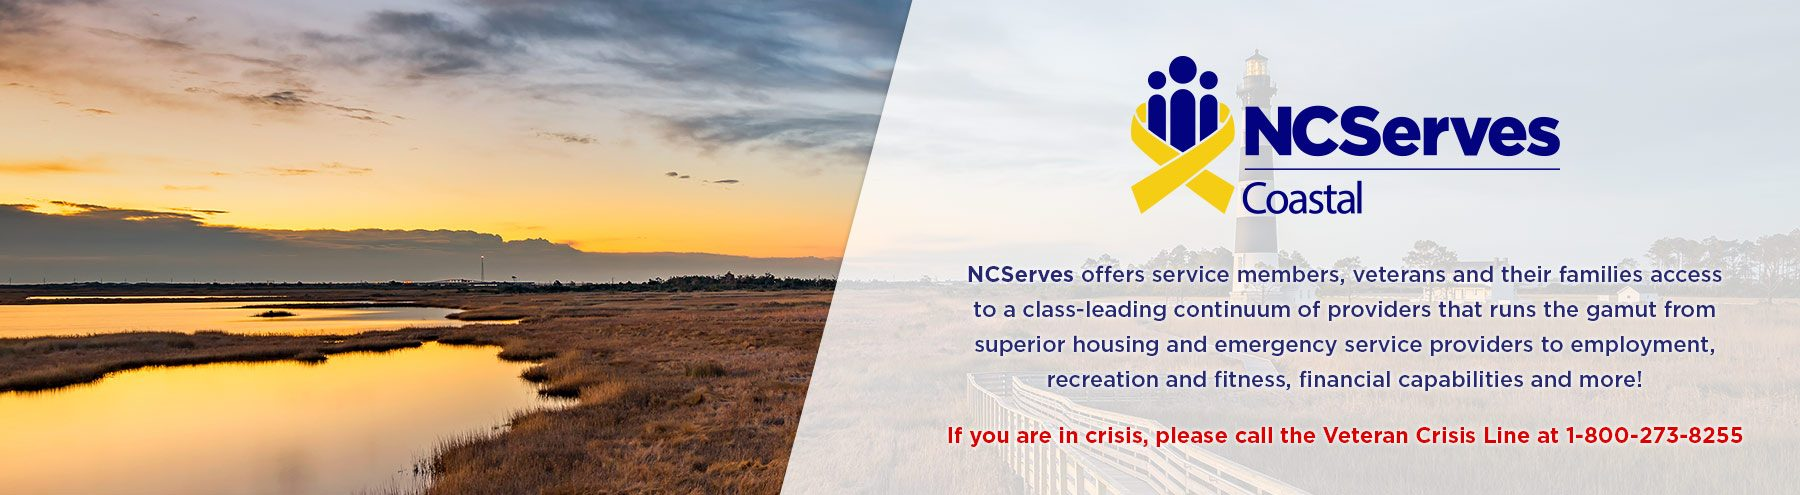 If you are in crisis, please call the Veteran Crisis Line at 1-800-272-8255. NCServes - Coastal offers service members, veterans and their families access to a class-leading continuum of providers that runs the gamut from superior housing and emergency service providers to employment, recreation and fitness, financial capabilities and more!